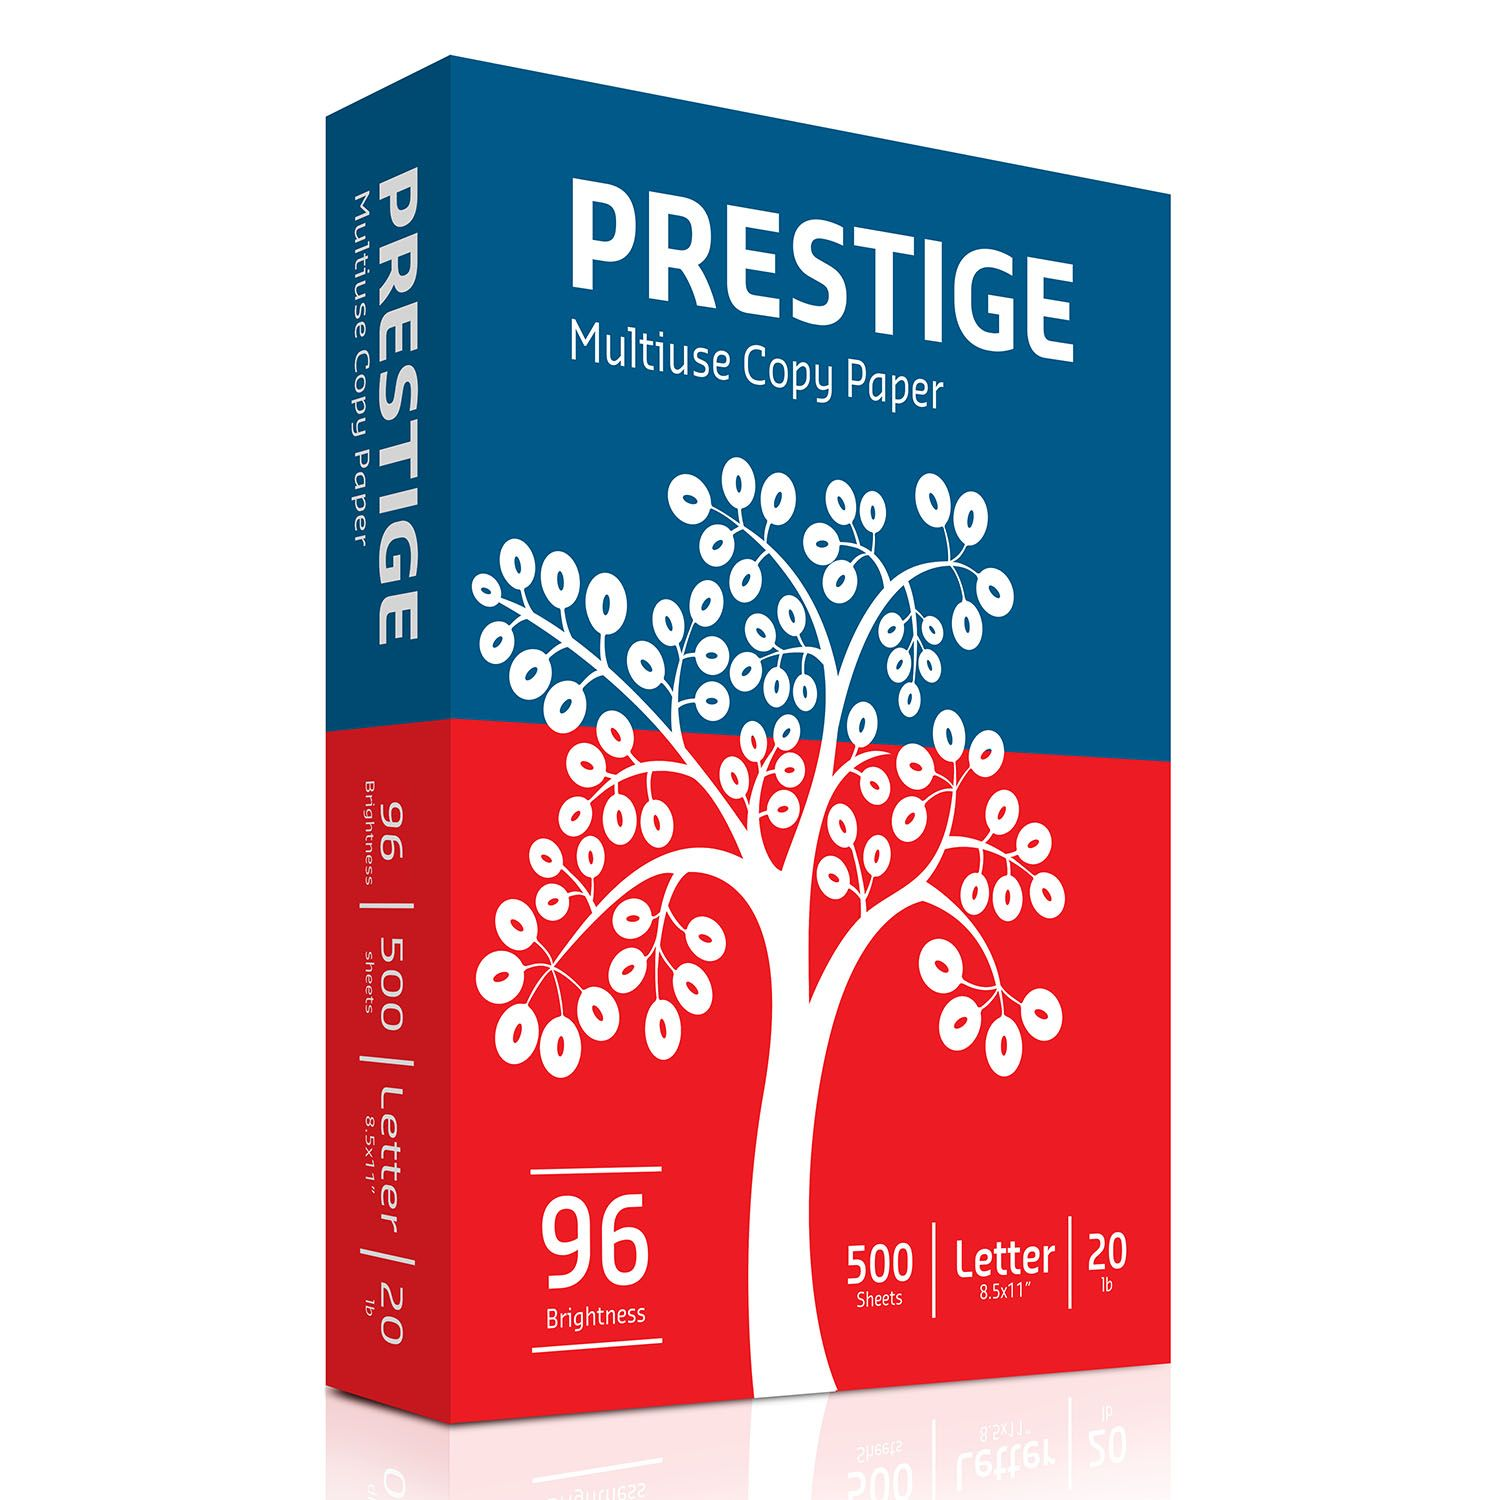 Prestige Multi-Use Copy Paper 20lb. 96 Bright 10 Ream Carton